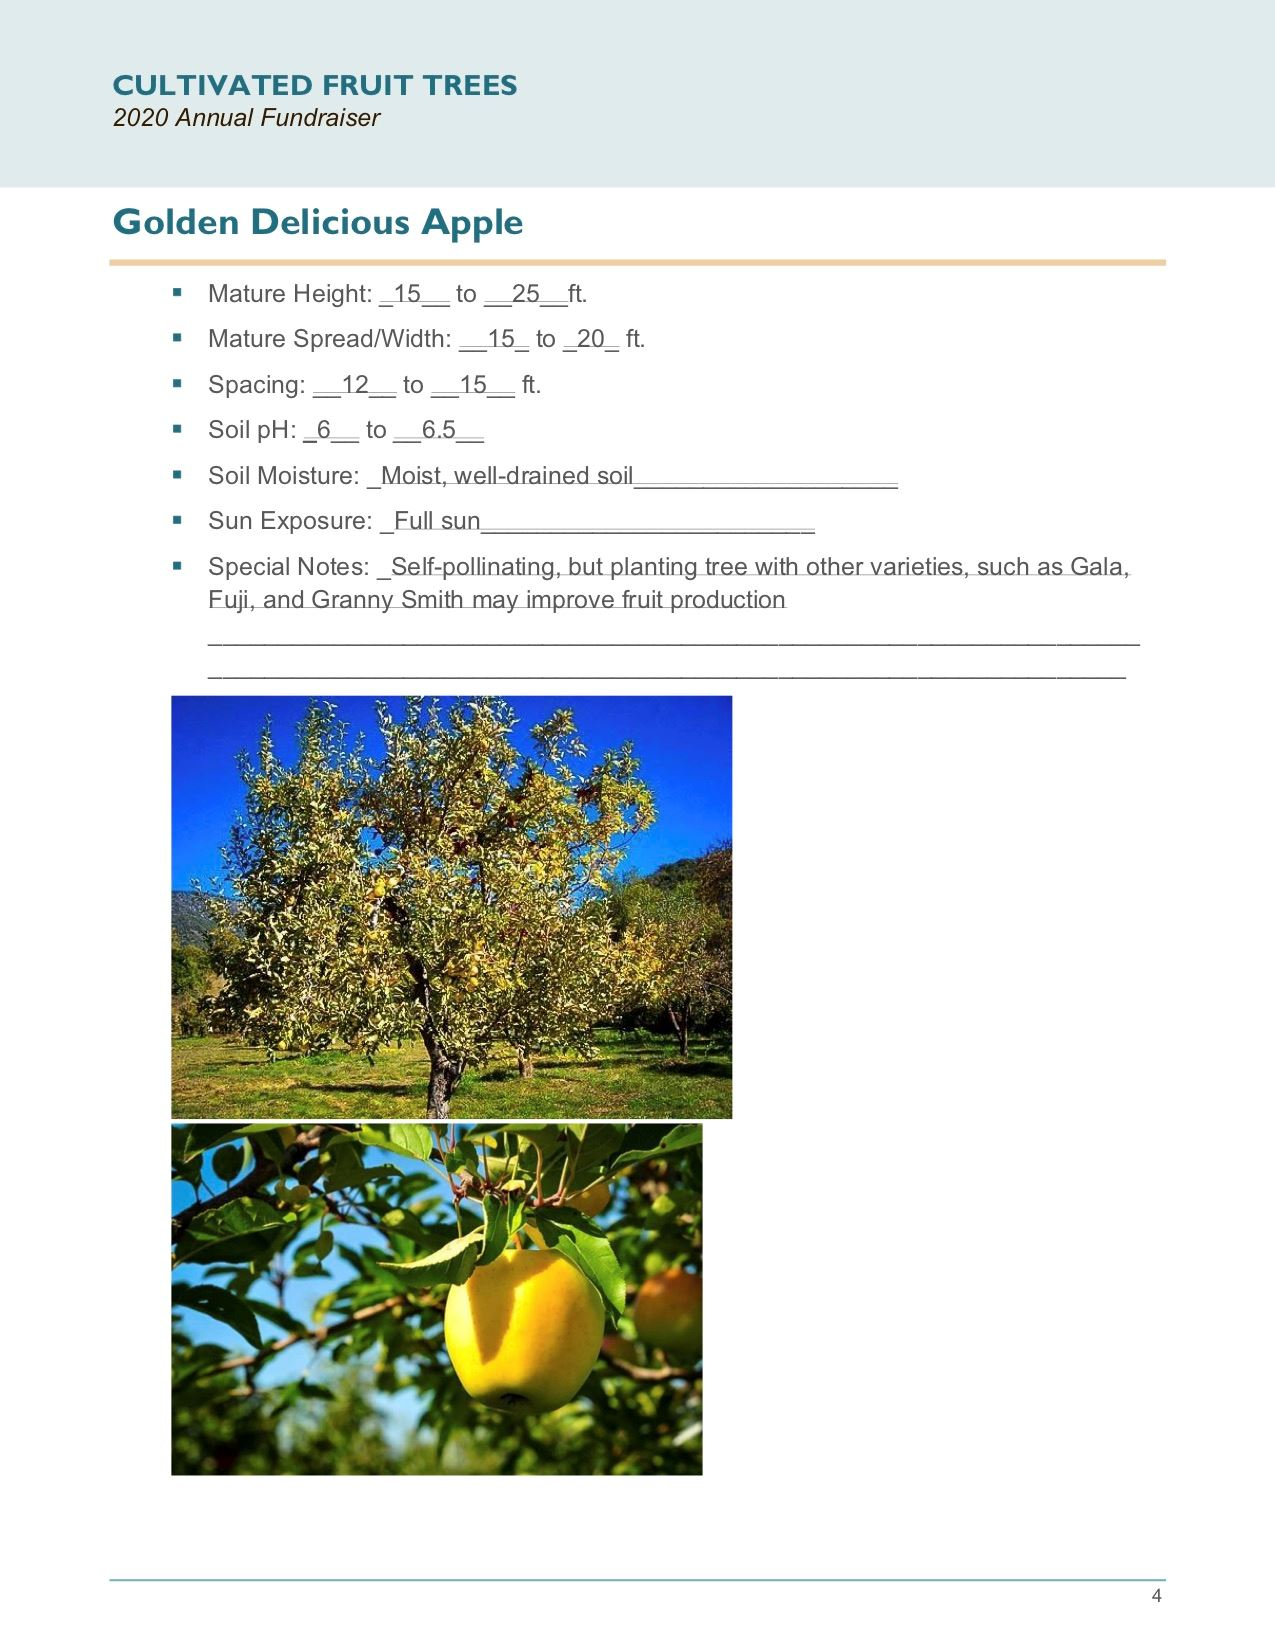 Brochure Template Draft_Cultivated_Fruit_Treespg4